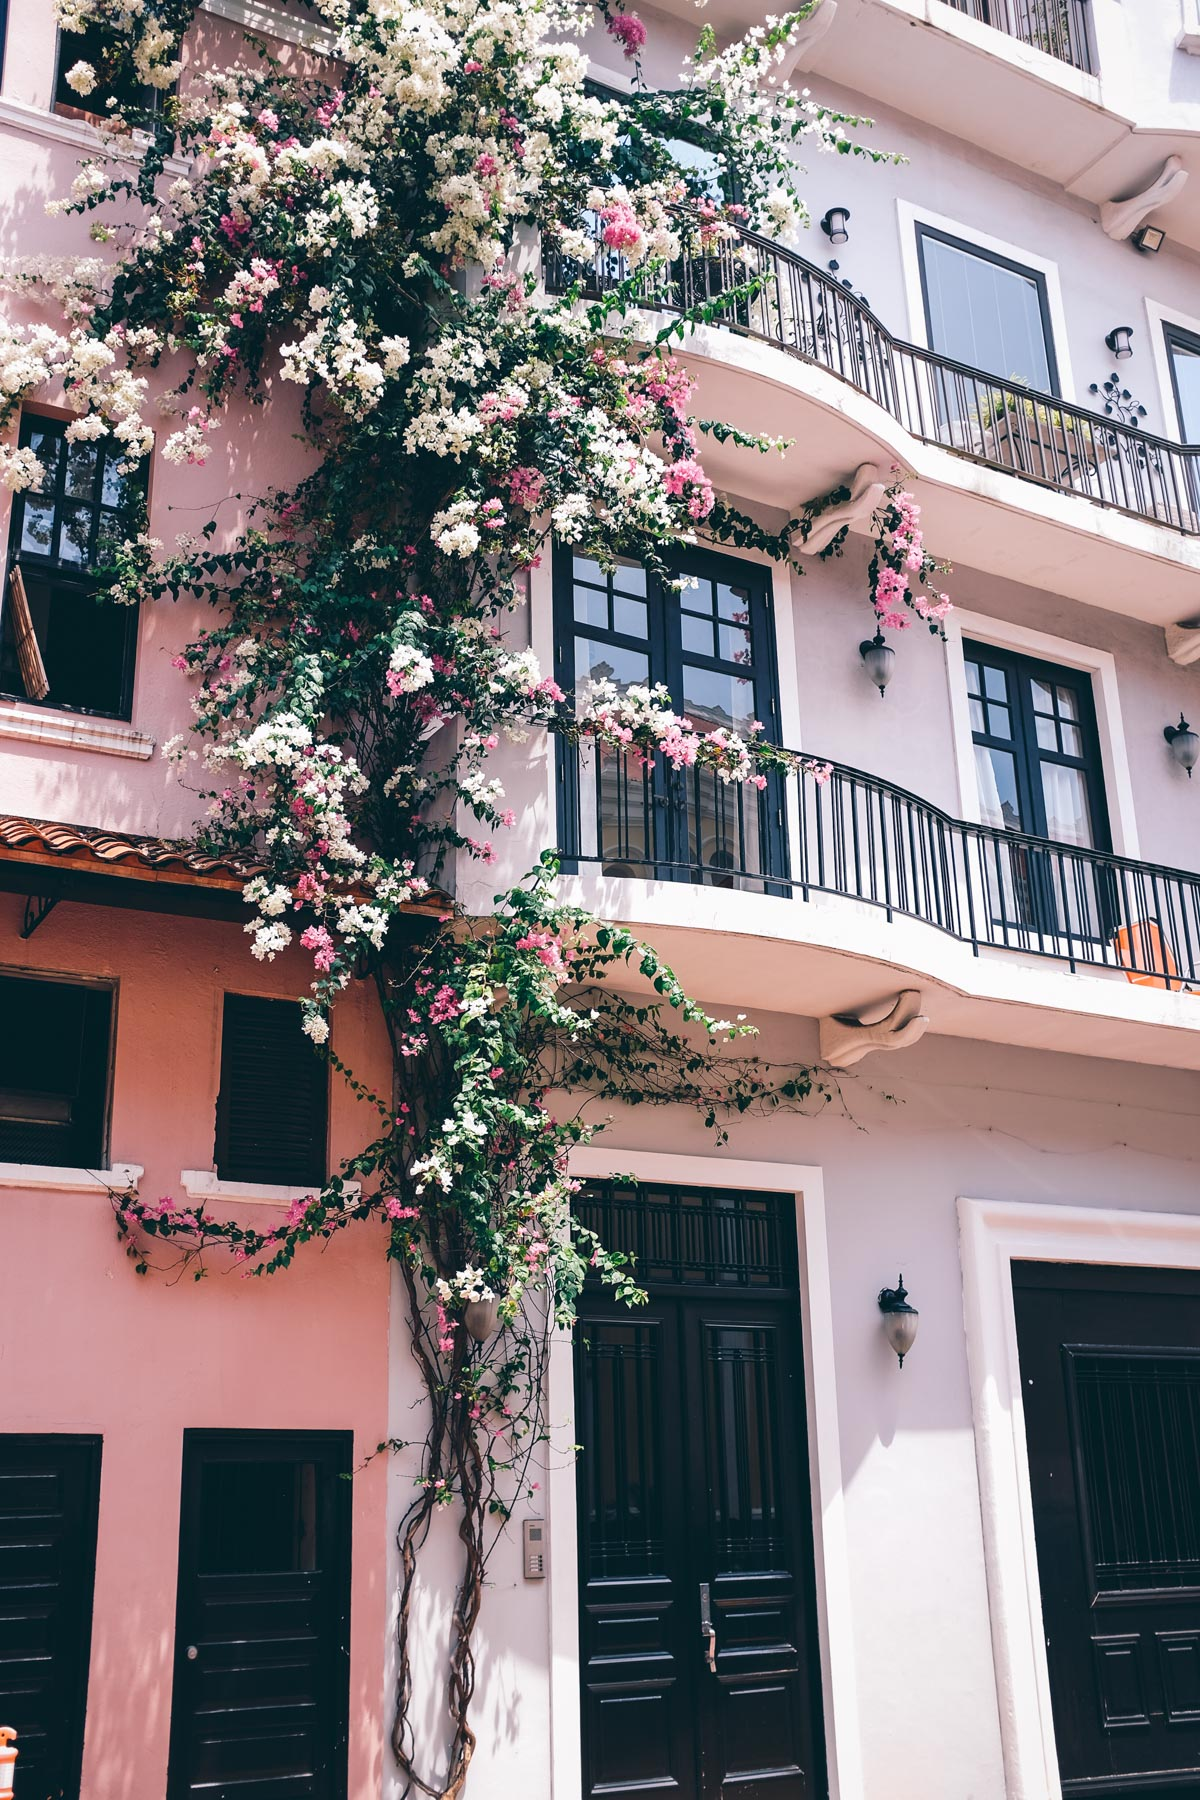 Beautiful Flowers on building fronts in Casco Viejo, Panama City